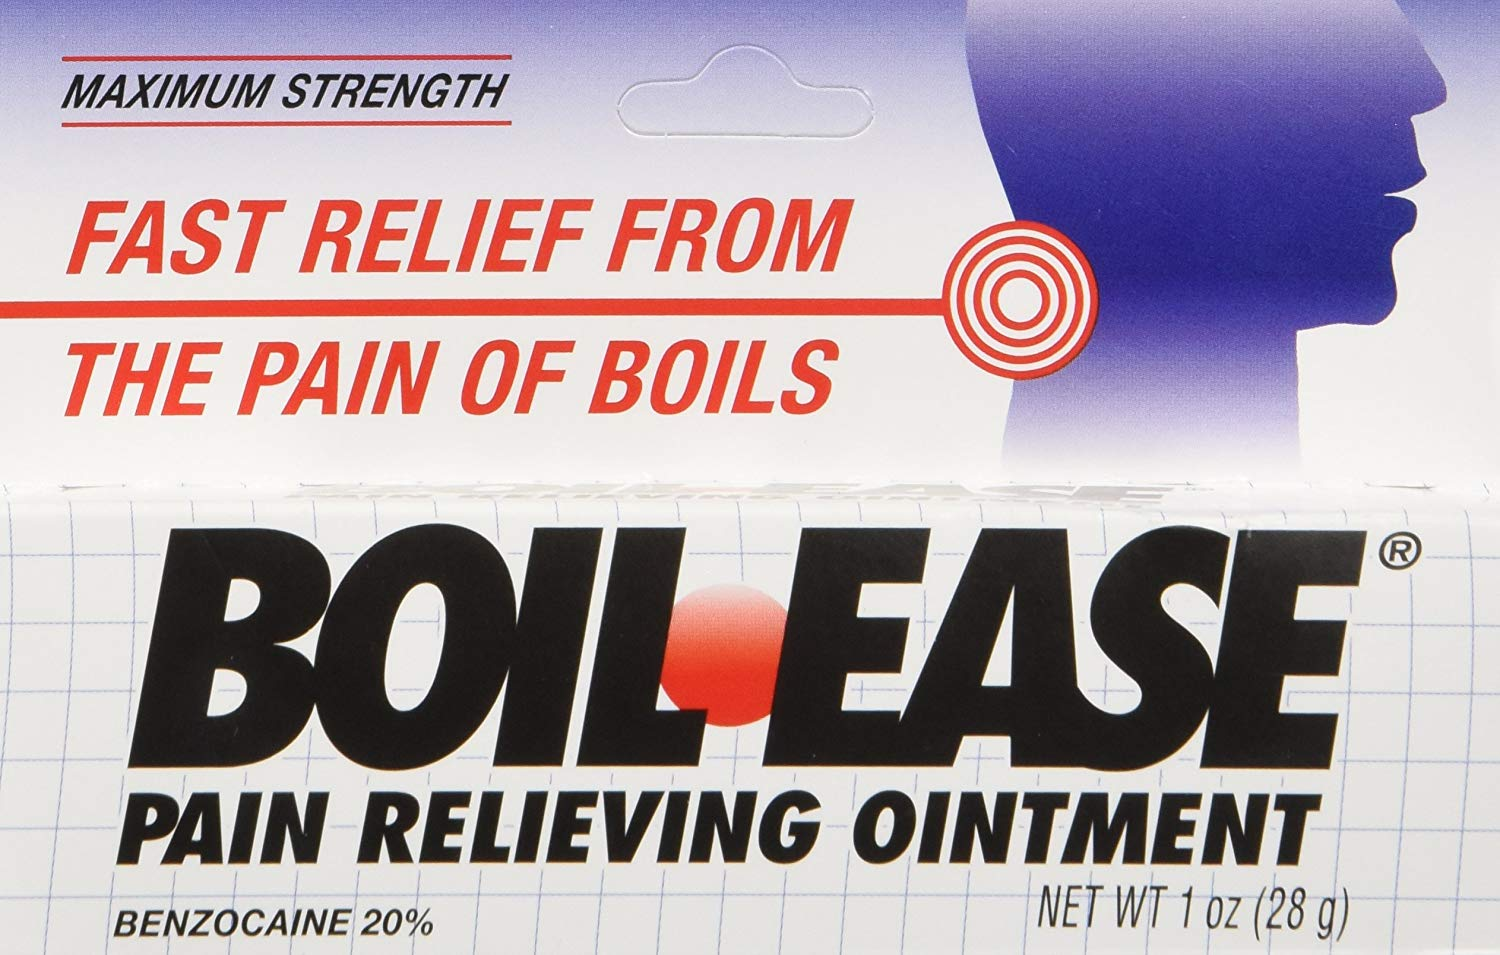 clipart black and white stock Drawing salves boil ease. Pain relieving ointment ounce